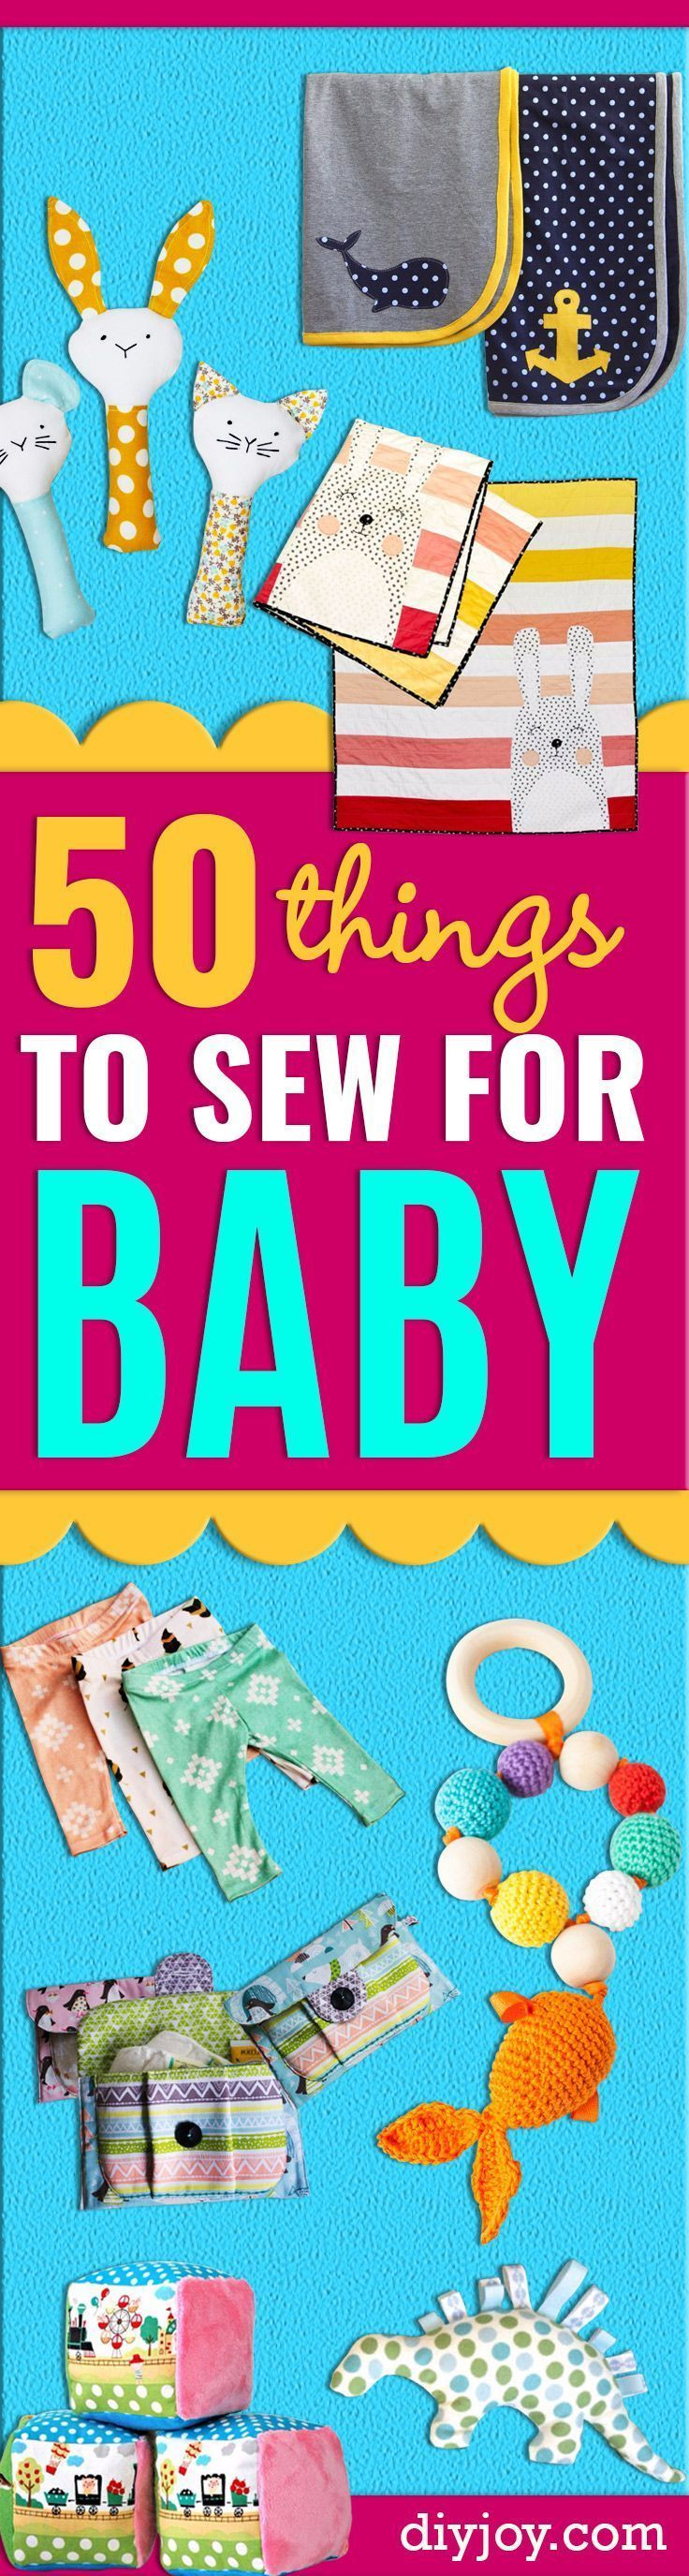 51 Things to Sew for Baby  - Cool Gifts For Baby, Easy Things To Sew and Sell